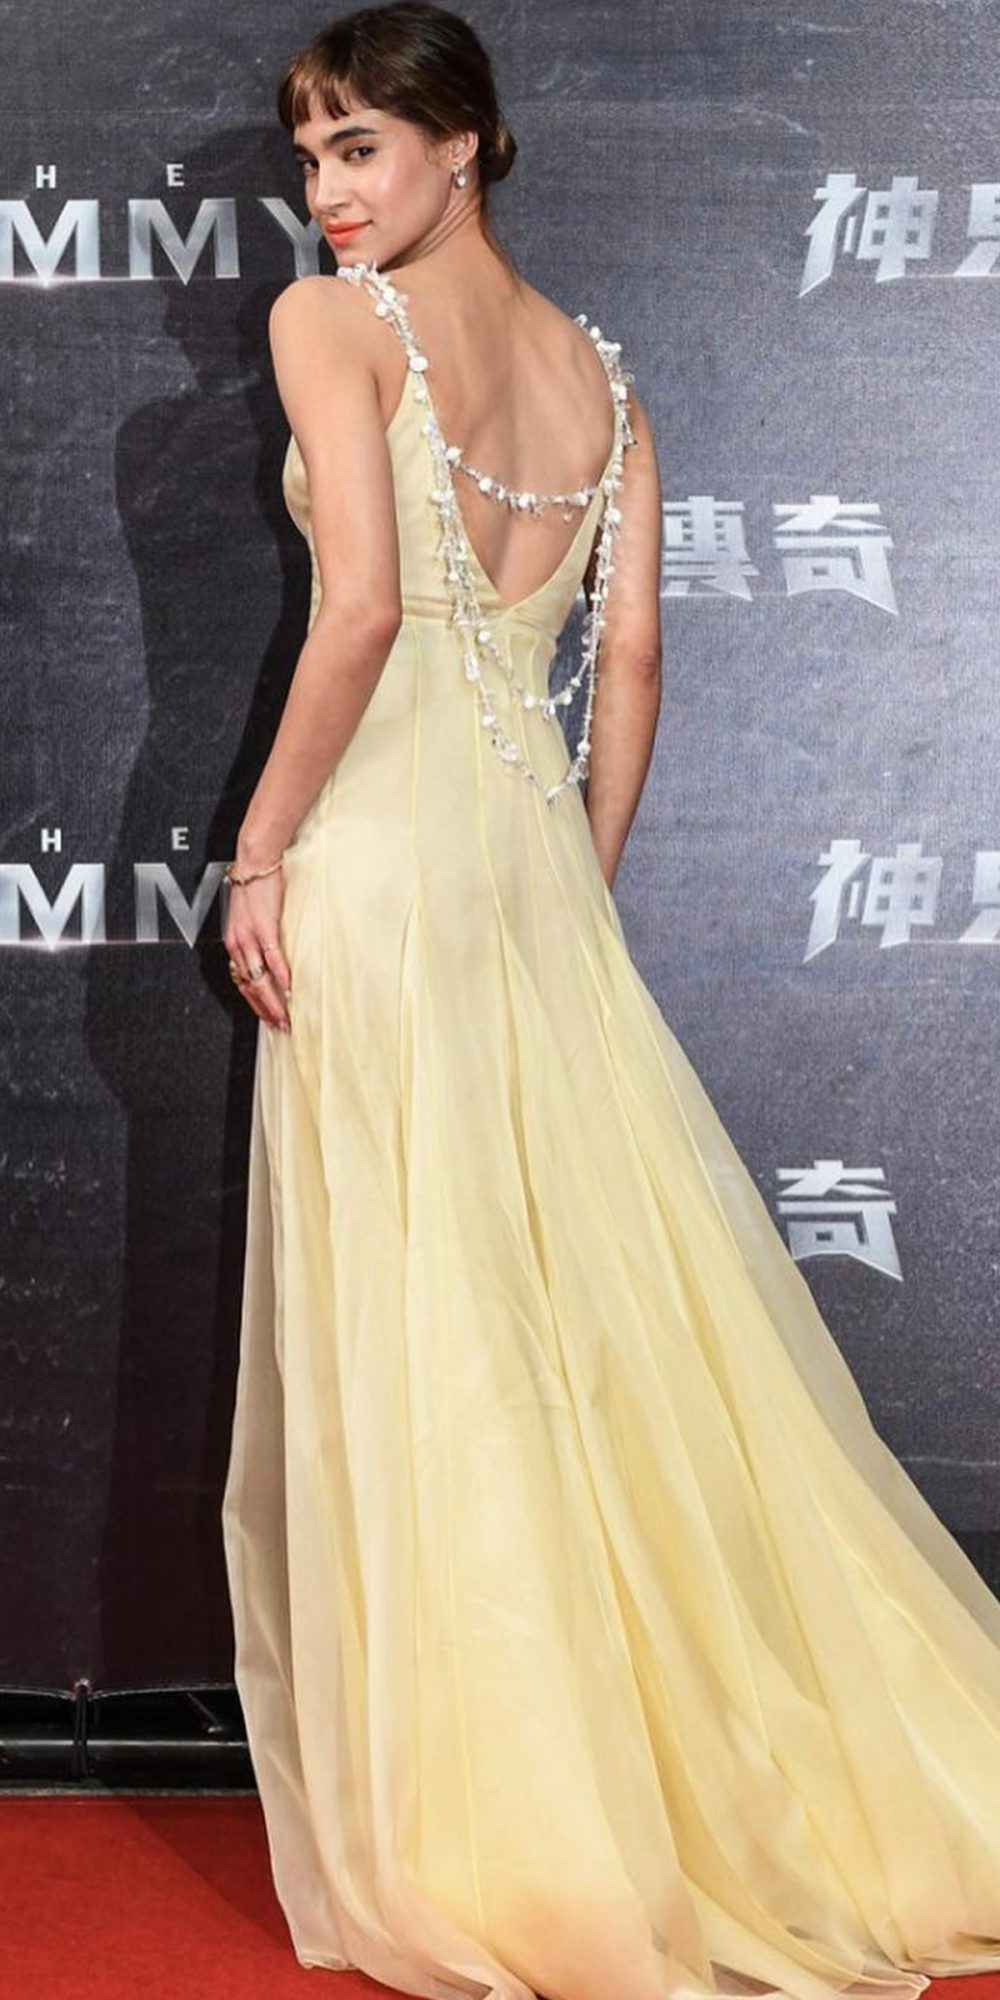 In Prada at the Taipei Premiere of The Mummy